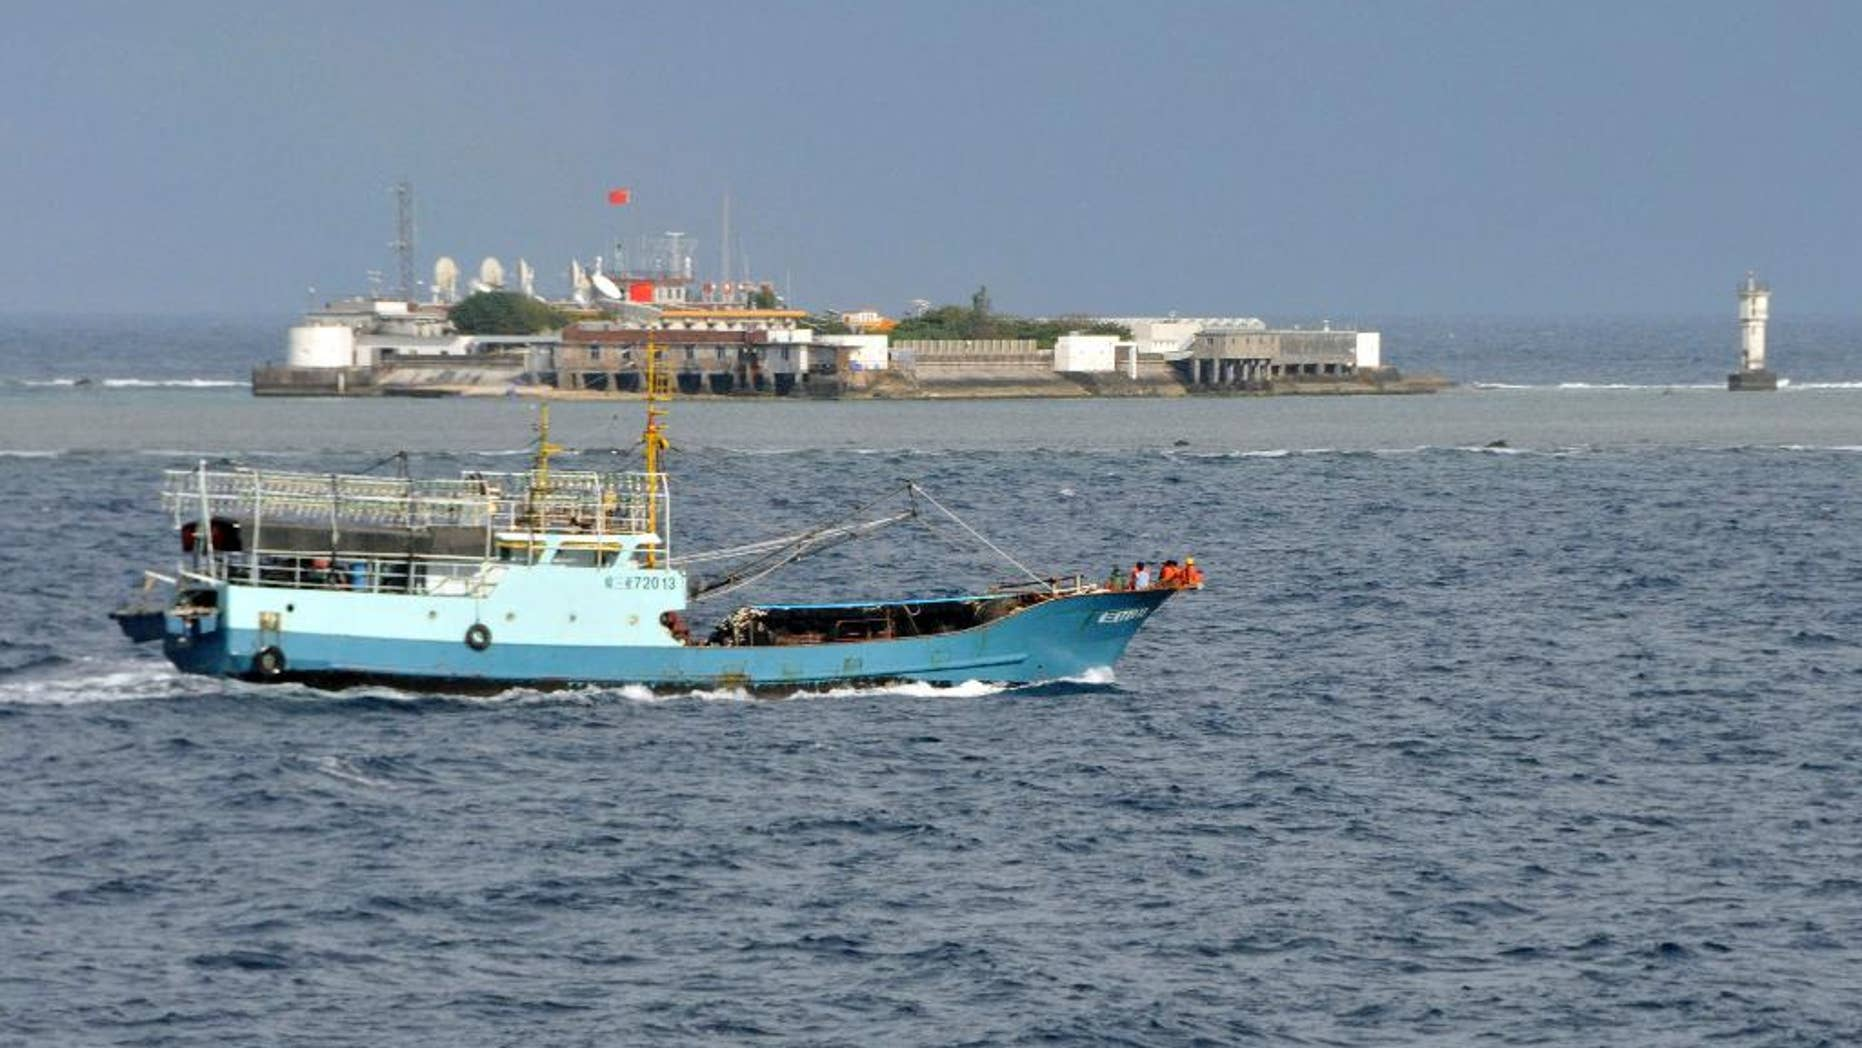 FILE - In this July 15, 2012 file photo released by China's Xinhua News Agency, a Chinese fishing vessel sails by Fiery Cross Reef, background, also known as Yongshu Reef by the Chinese, of the Spratly Islands in South China Sea. Defying a U.S. call to halt the project, China defended its land reclamation in the disputed Spratly Islands on Monday, Nov. 24, 2014, saying the work is for public service use, although a London-based security group says the new island could host a military airfield to intimidate neighbors. In a recent report, IHS Jane's said satellite images taken in August and November showed that Chinese dredgers had created a land mass almost the entire length of Fiery Cross Reef, which was previously under water. The security group said it is China's largest construction project in the island chain. (AP Photo/Xinhua, Wang Cunfu, File) NO SALES